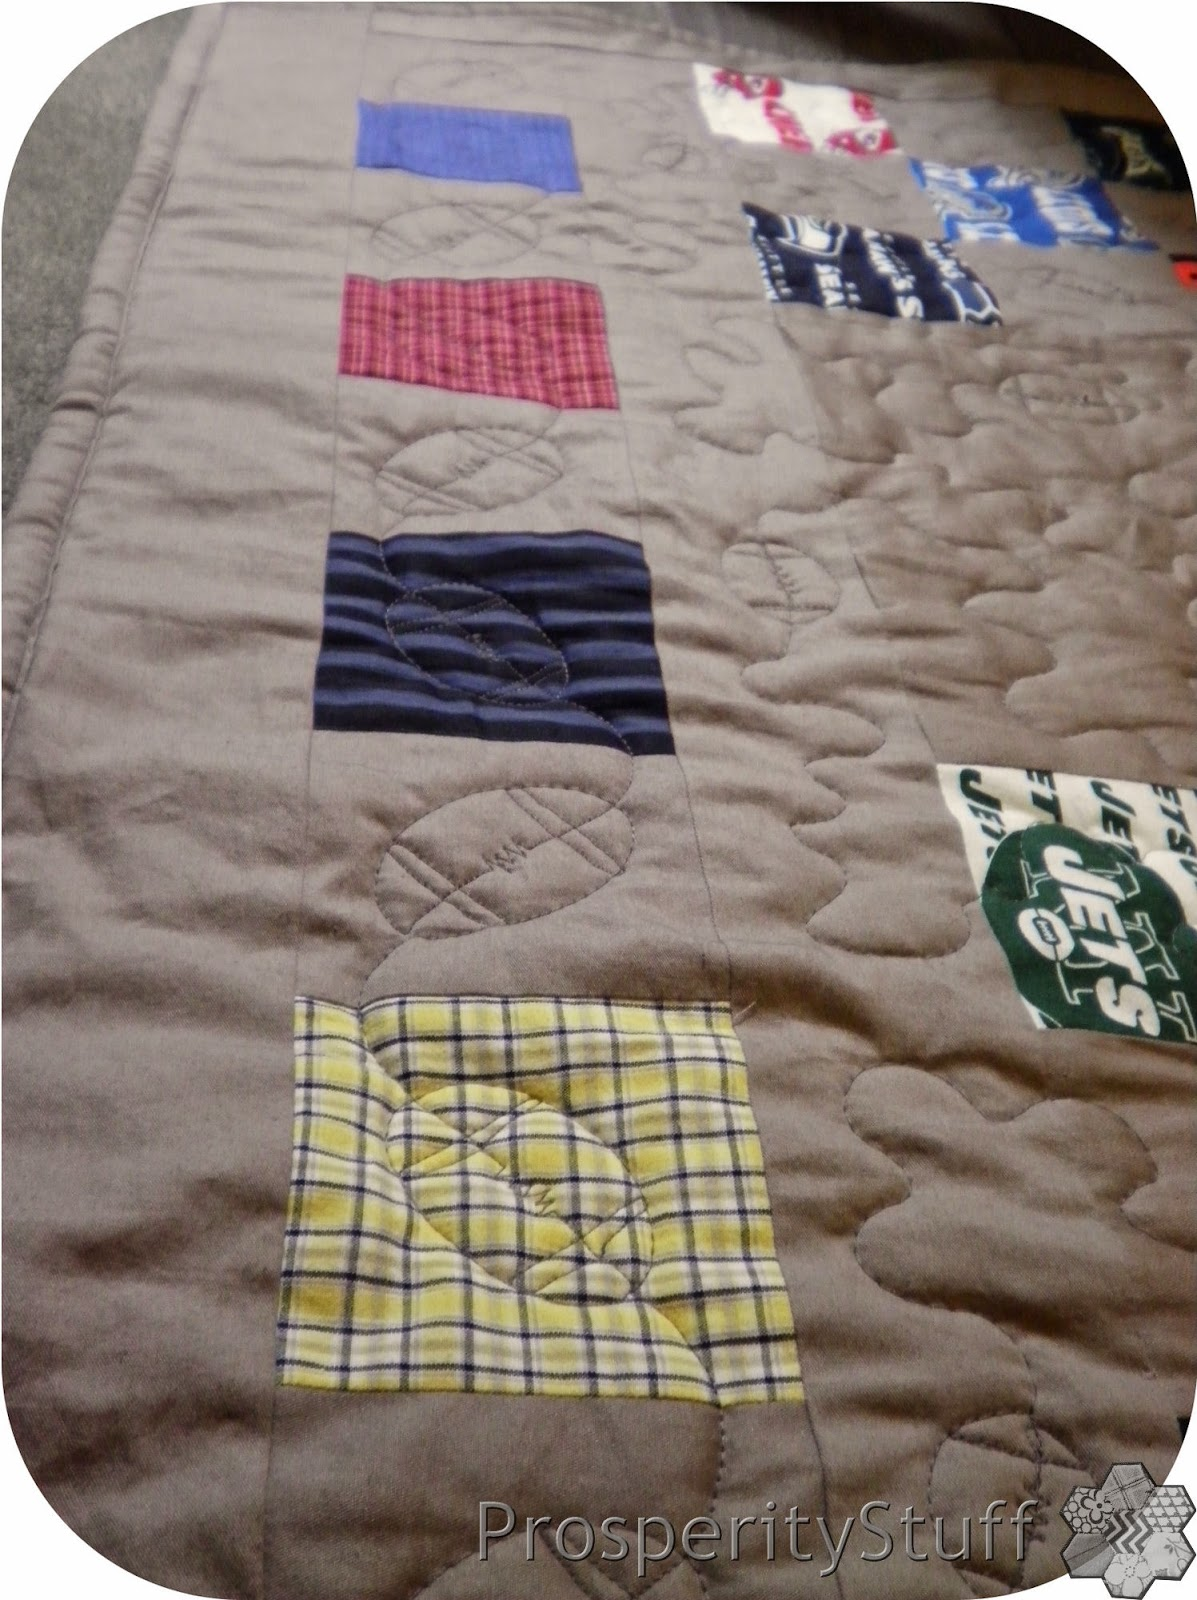 ProsperityStuff Quilt, made from sheet, shirts, & NFL fabric